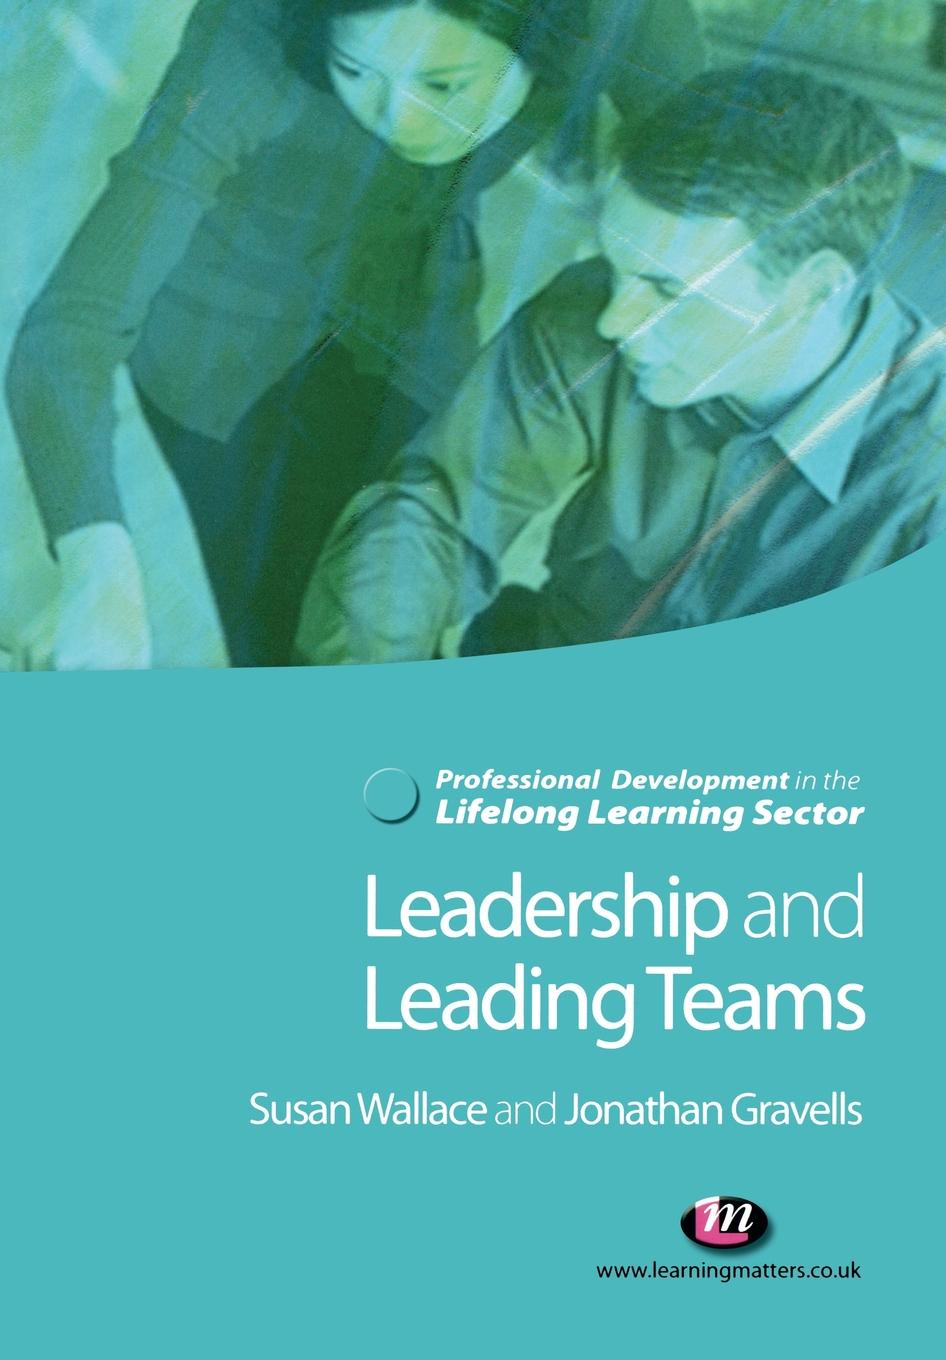 Susan Wallace, Jonathan Gravells Leadership and Leading Teams in the Lifelong Learning Sector rory burke project management leadership building creative teams